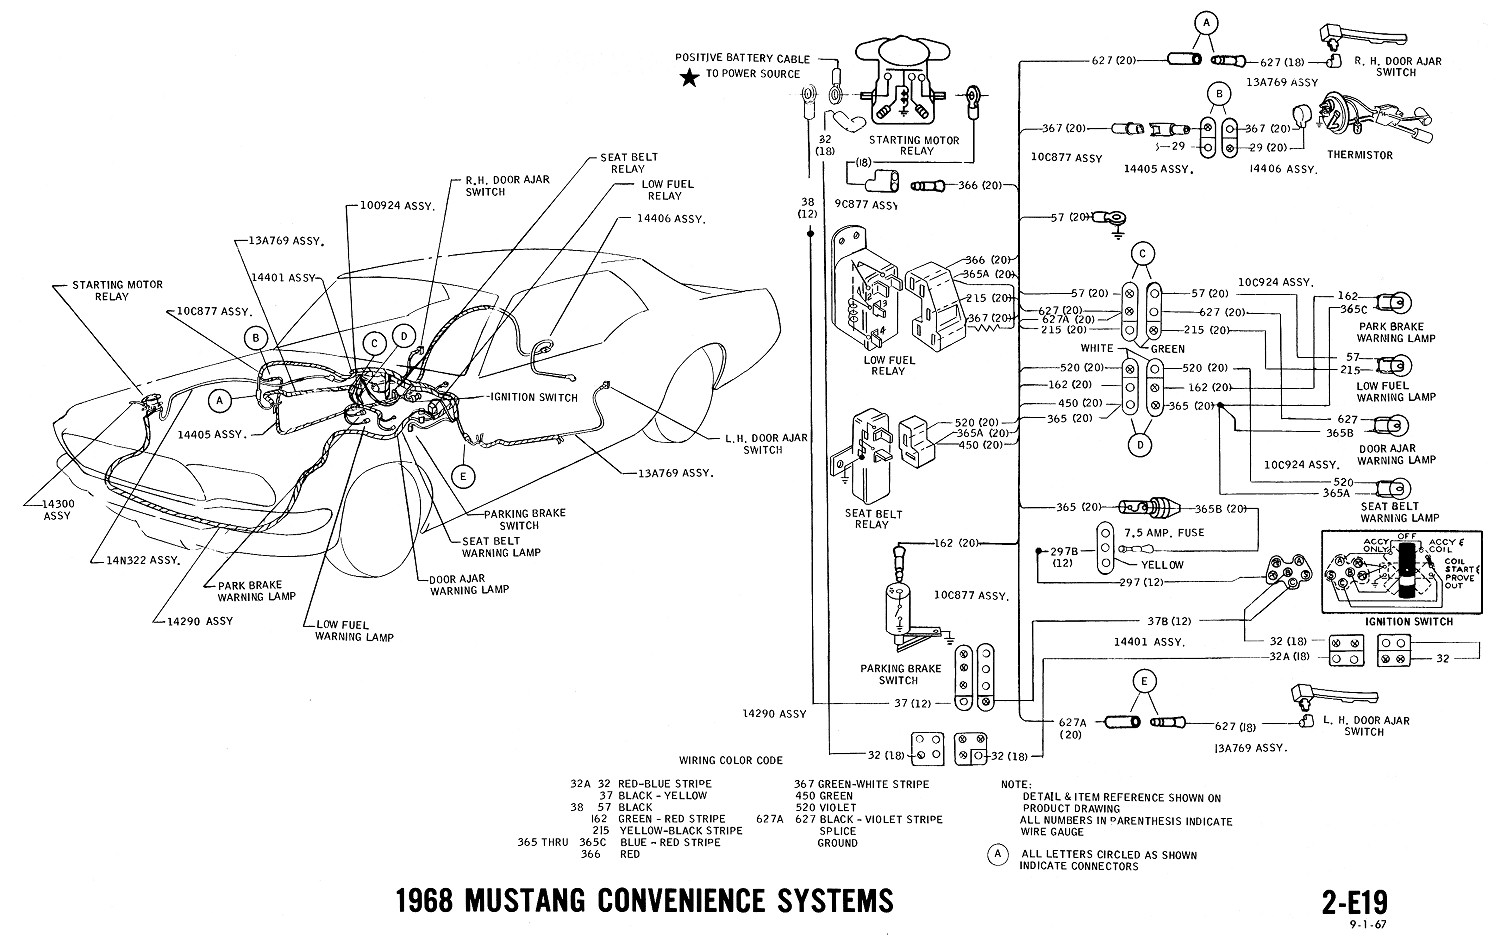 1968 Mustang Wiring Diagrams on 1968 mustang seat diagram